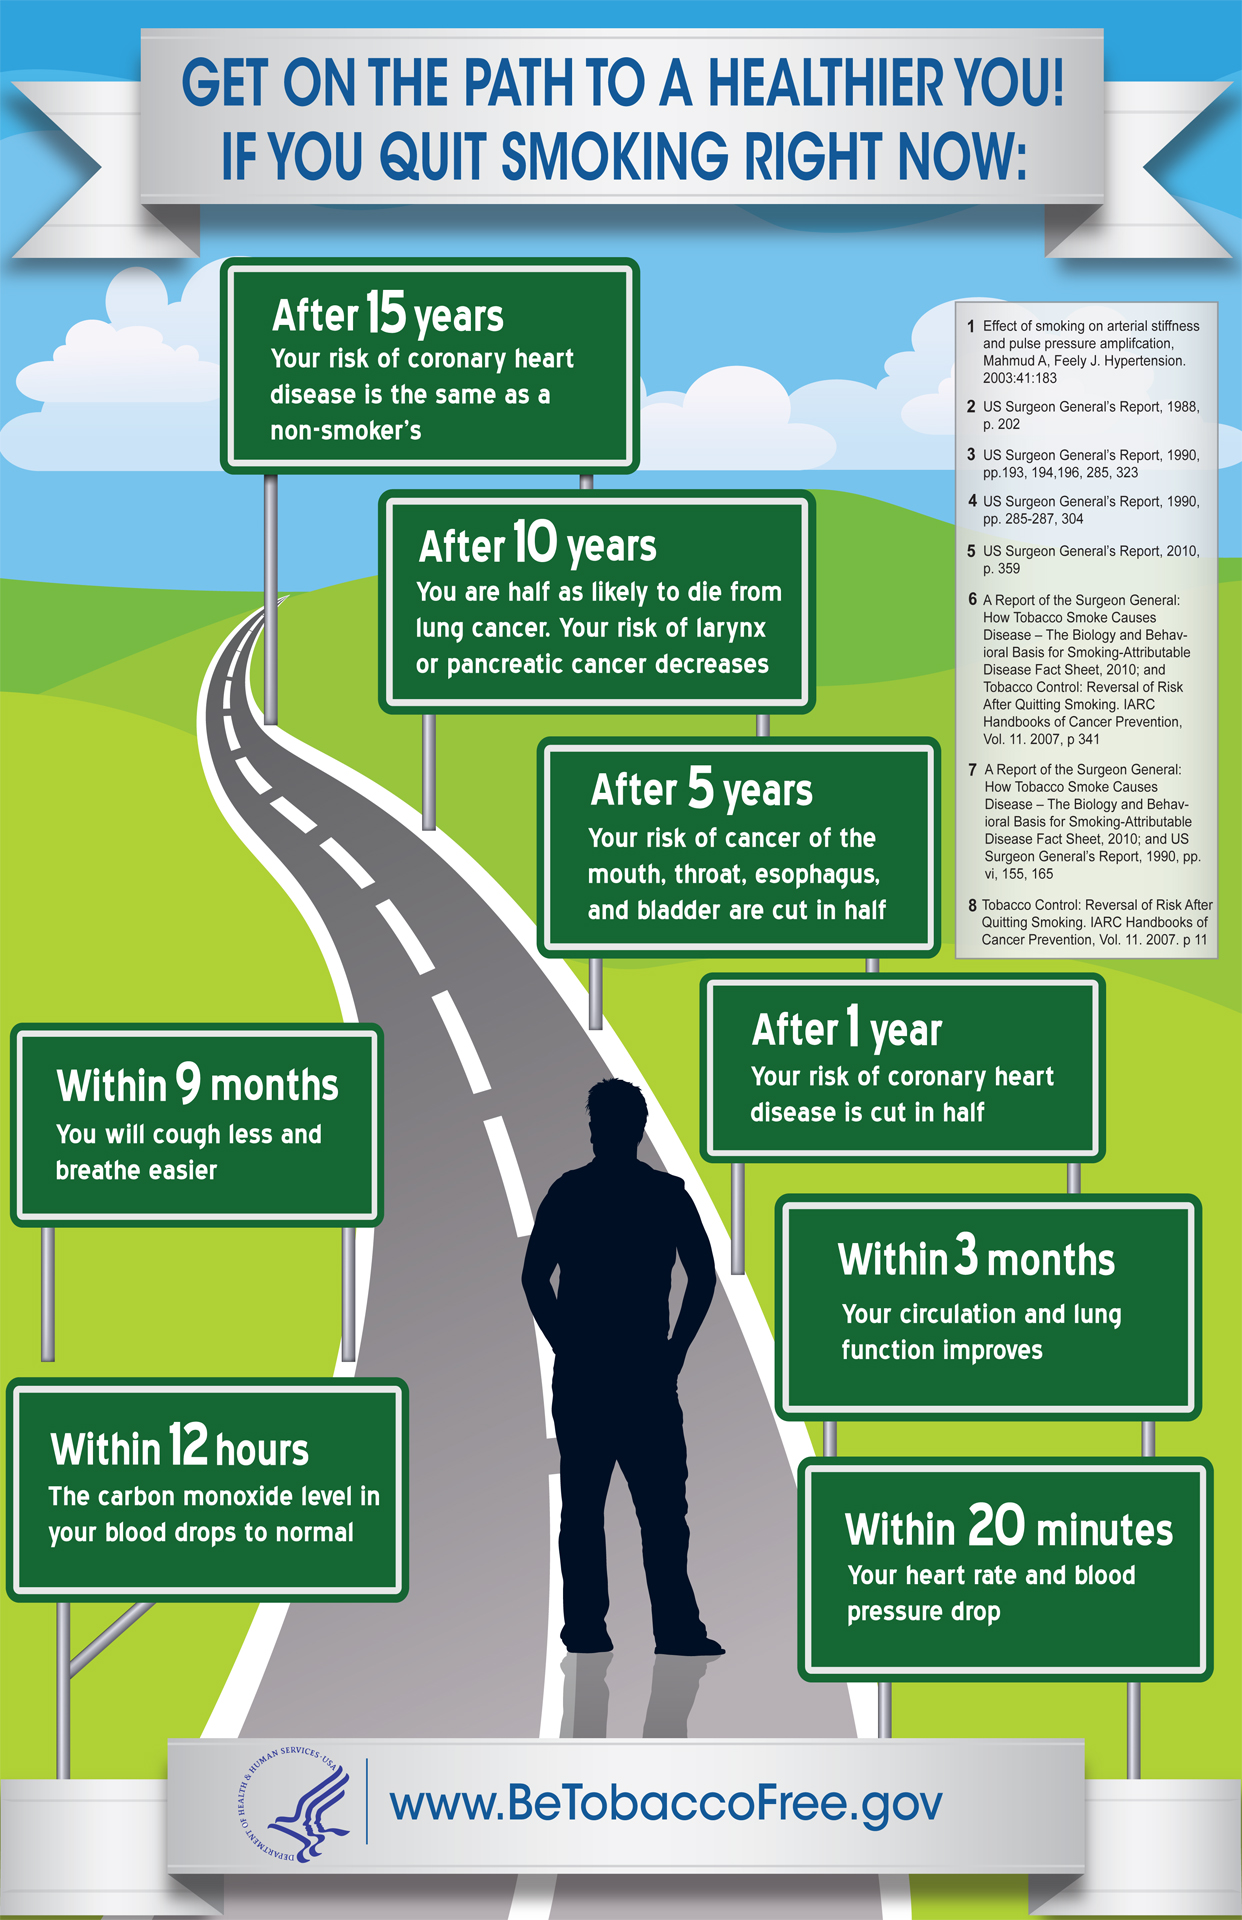 Get on the path to a healthier you. For a text-version of the information displayed on the infographic, use the link of the image.